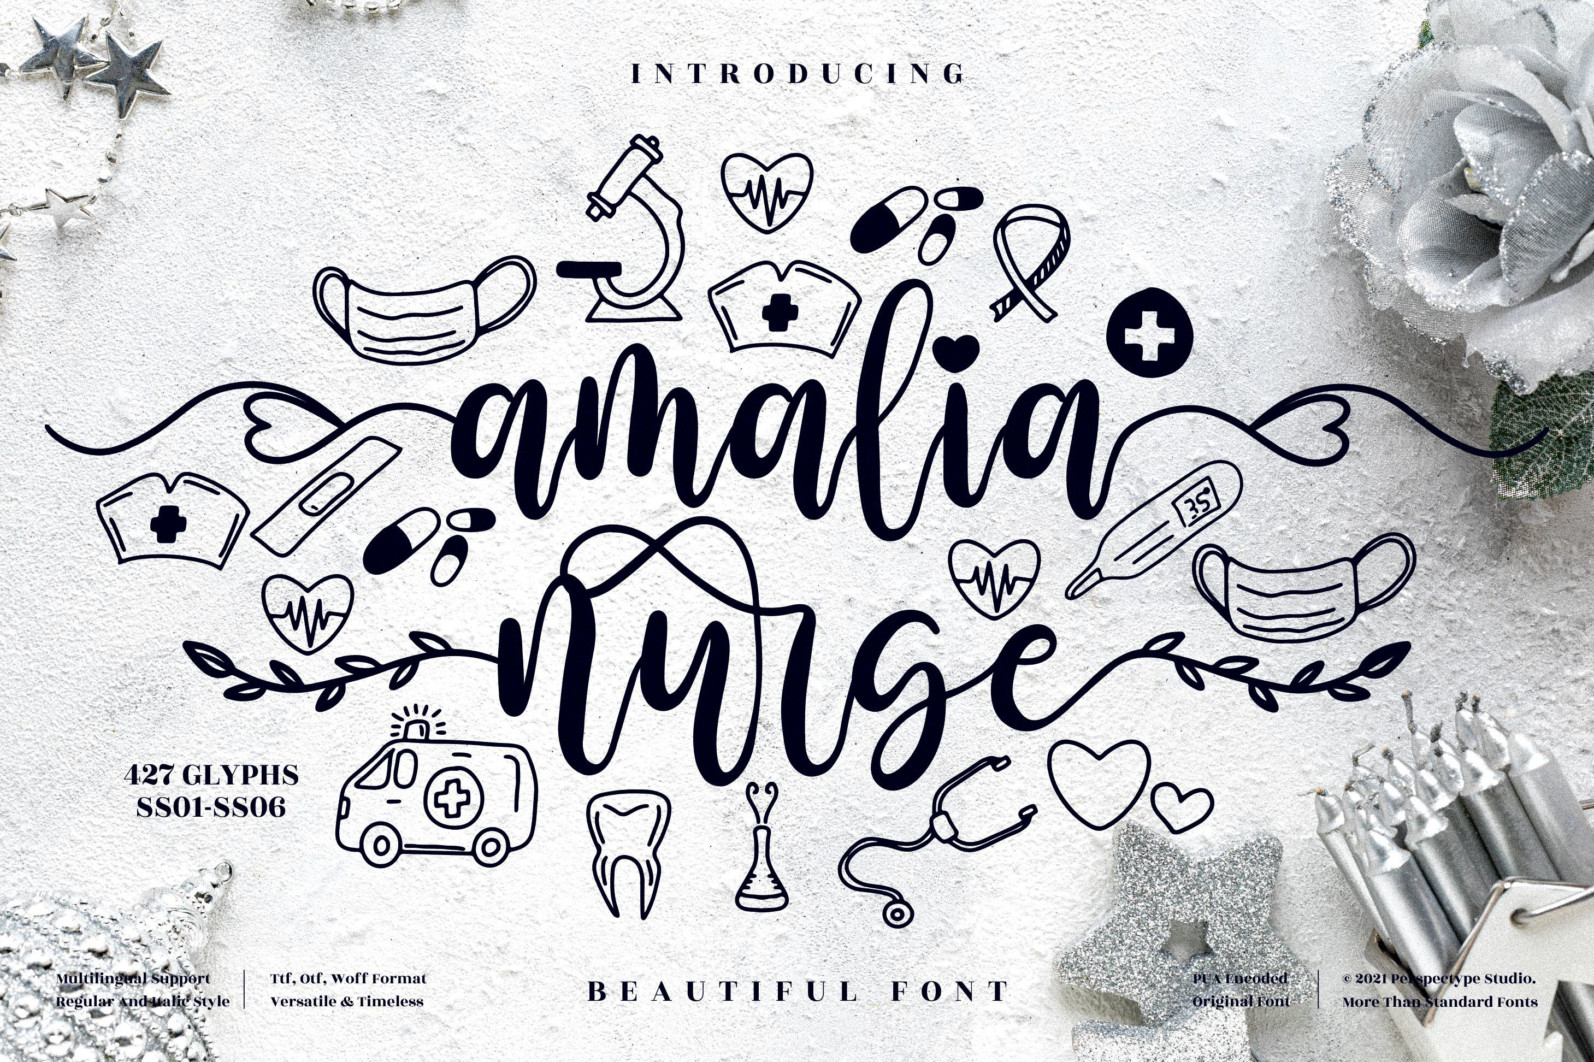 Love love Font Bundle from Perspectype Studio - 18 2 scaled -